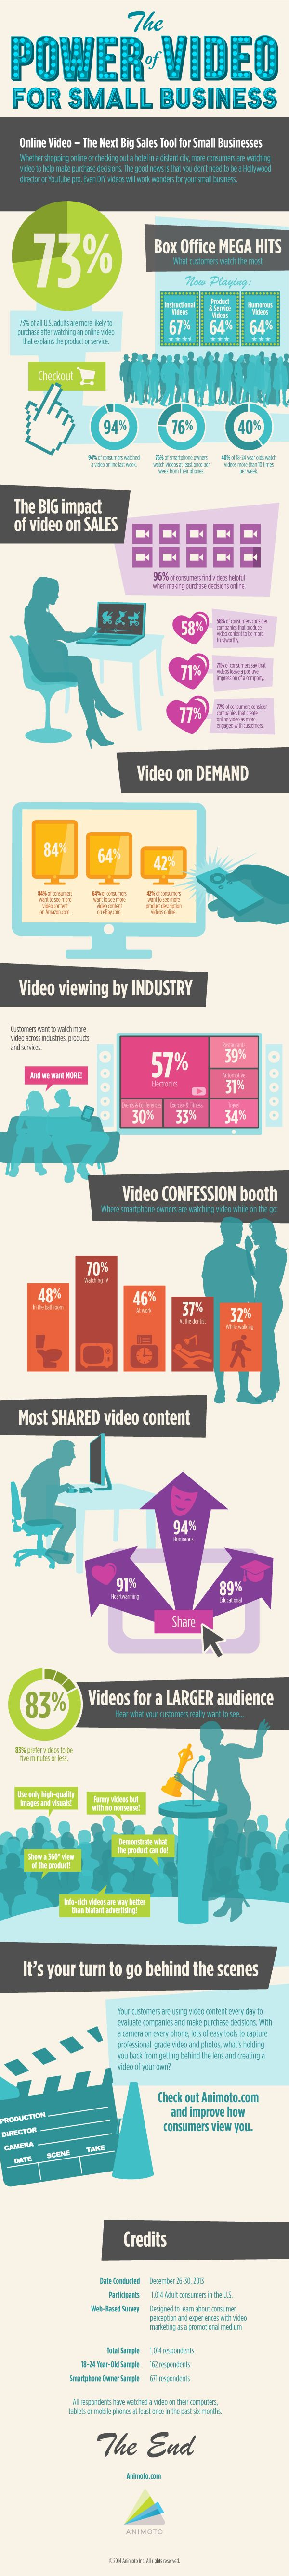 Video Helps Persuade 73% of People to Buy a Product or Service (Infographic) #smallbusiness #marketing